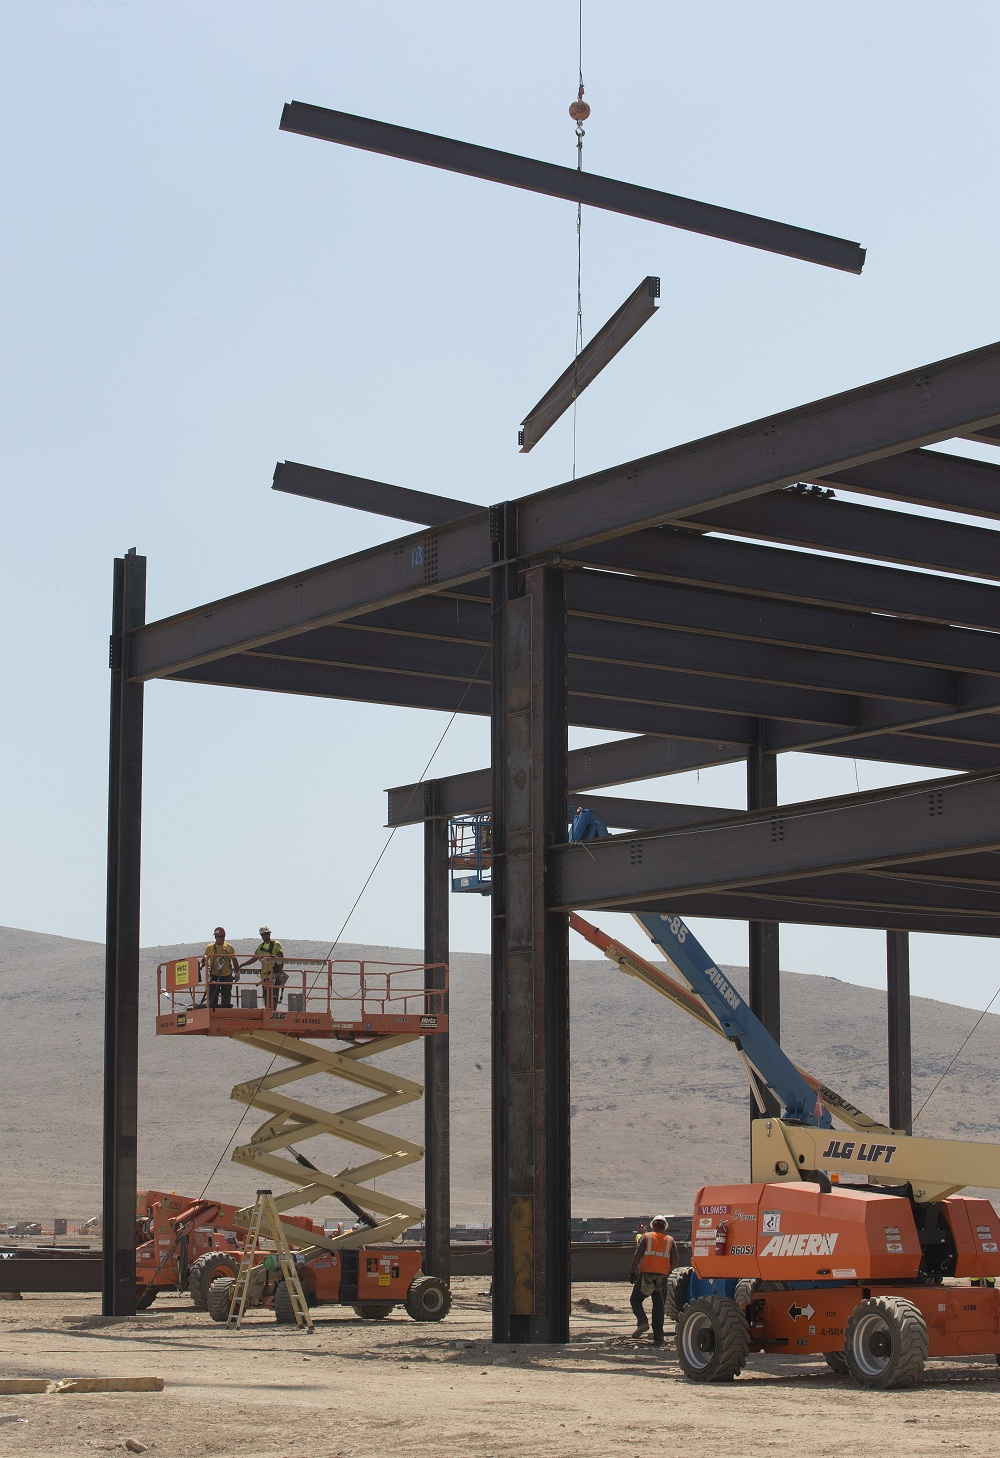 Support beams are lowered in to position during the construction of the new Tesla Motors Inc., Gigafactory, Tuesday, July 26, 2016, in Sparks, Nev. It's Tesla Motors biggest bet yet: a massive, $5 billion factory in the Nevada desert that could almost double the world's production of lithium-ion batteries by 2018. (AP Photo/Rich Pedroncelli)